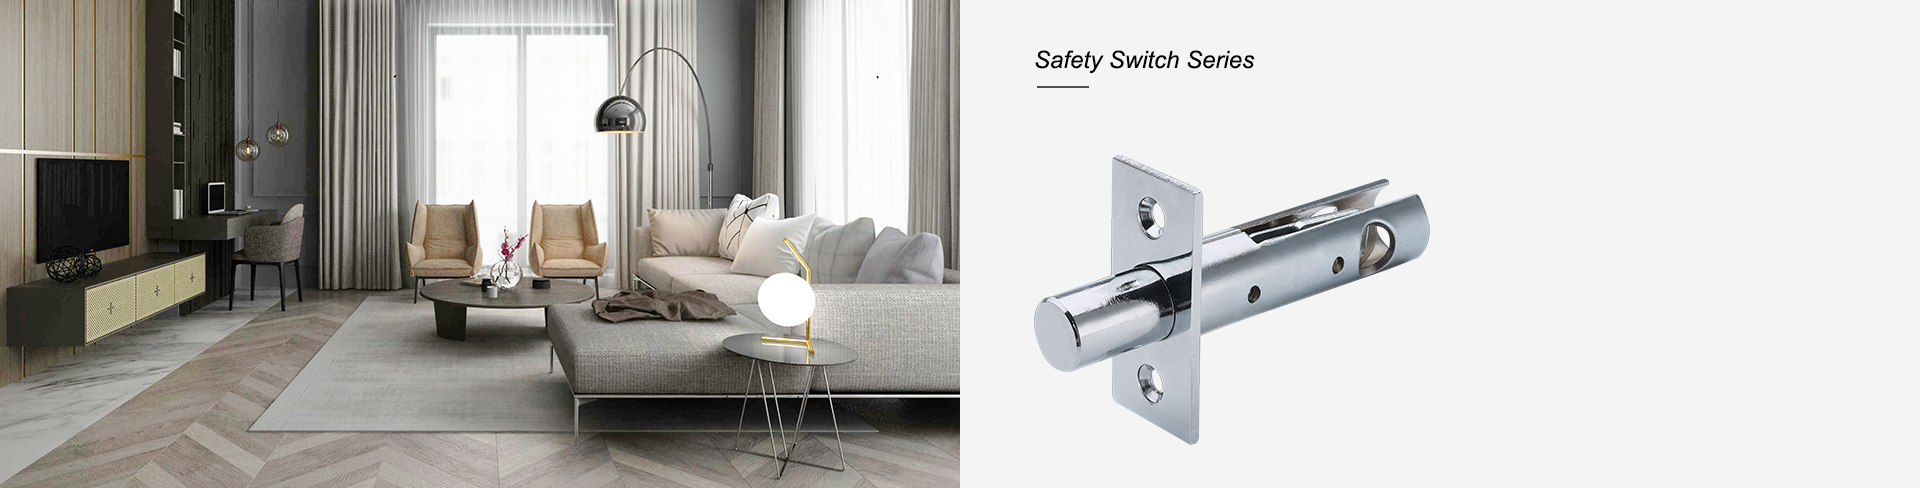 Safety Switch Series